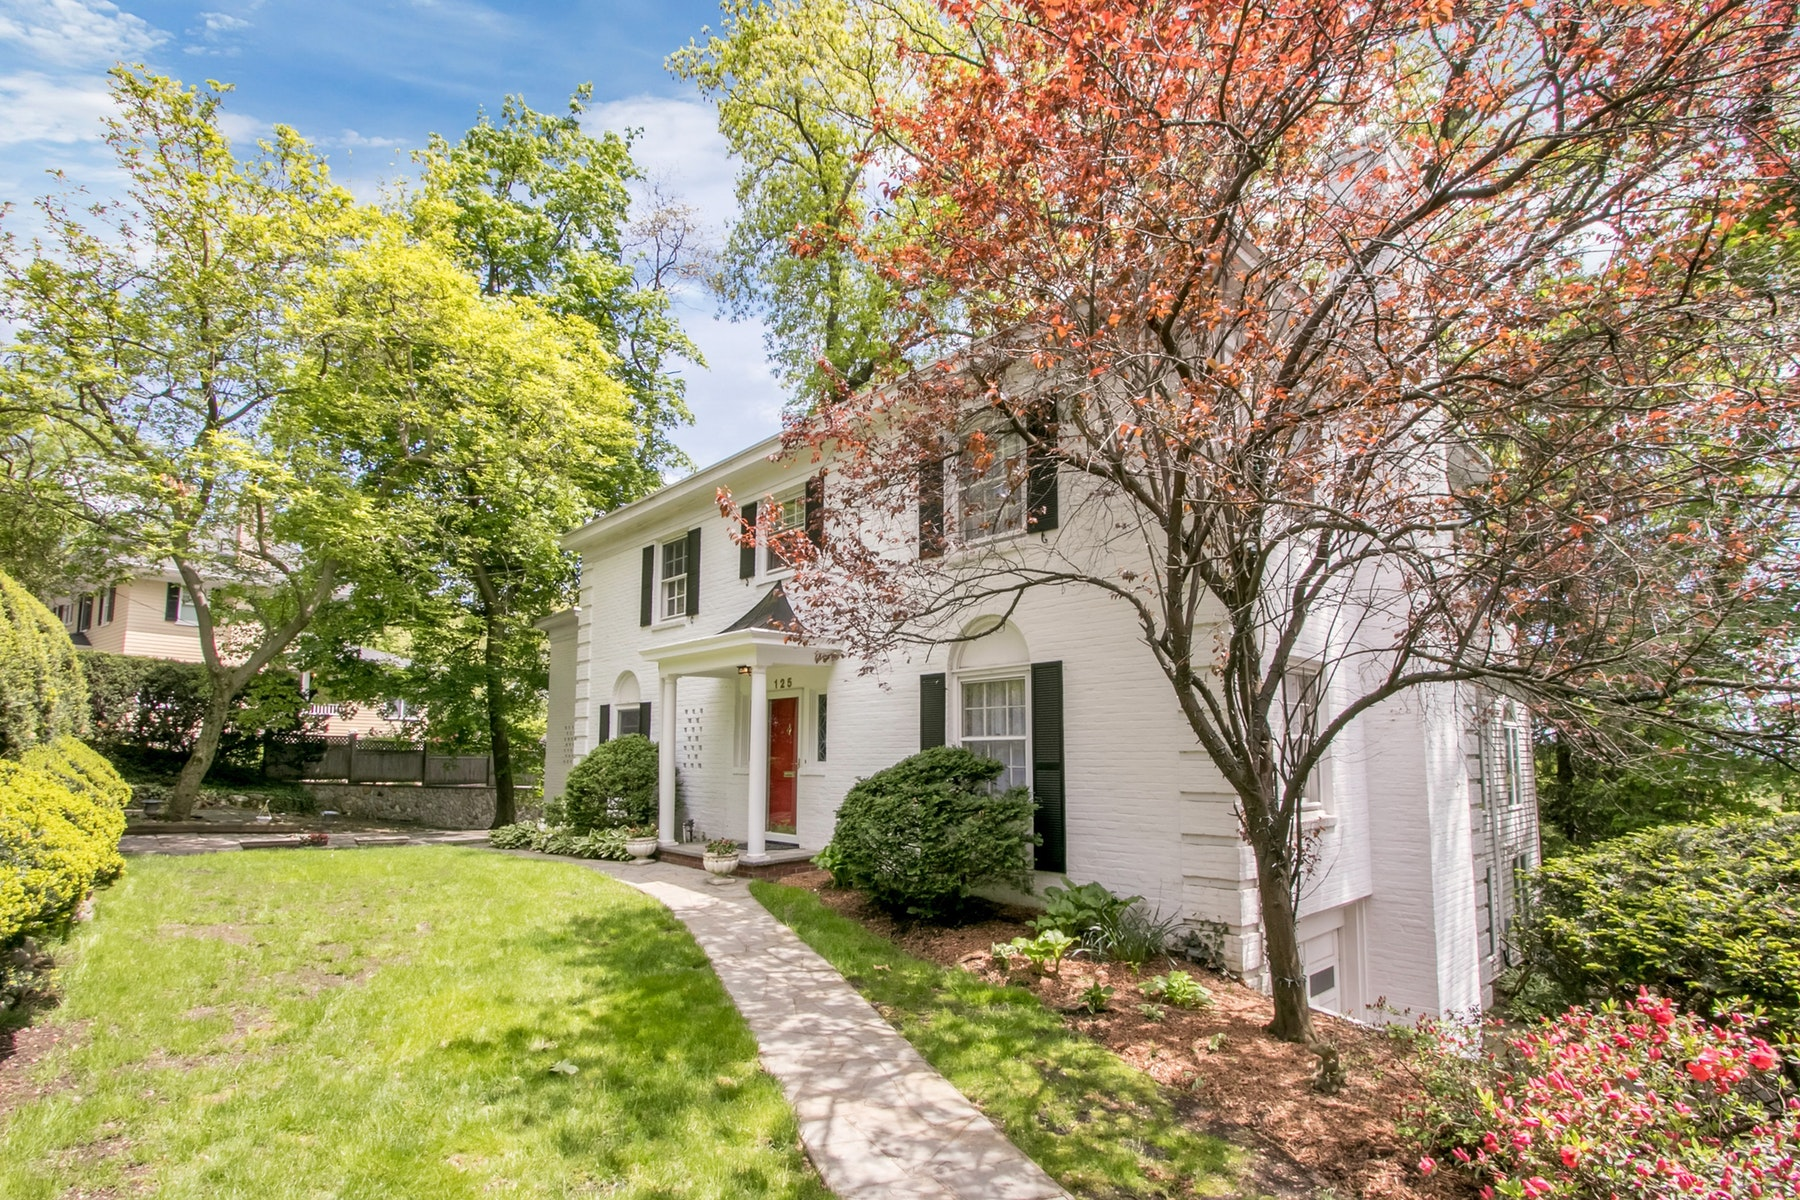 Single Family Homes for Sale at Charming Colonial 125 Crest Road Ridgewood, New Jersey 07450 United States